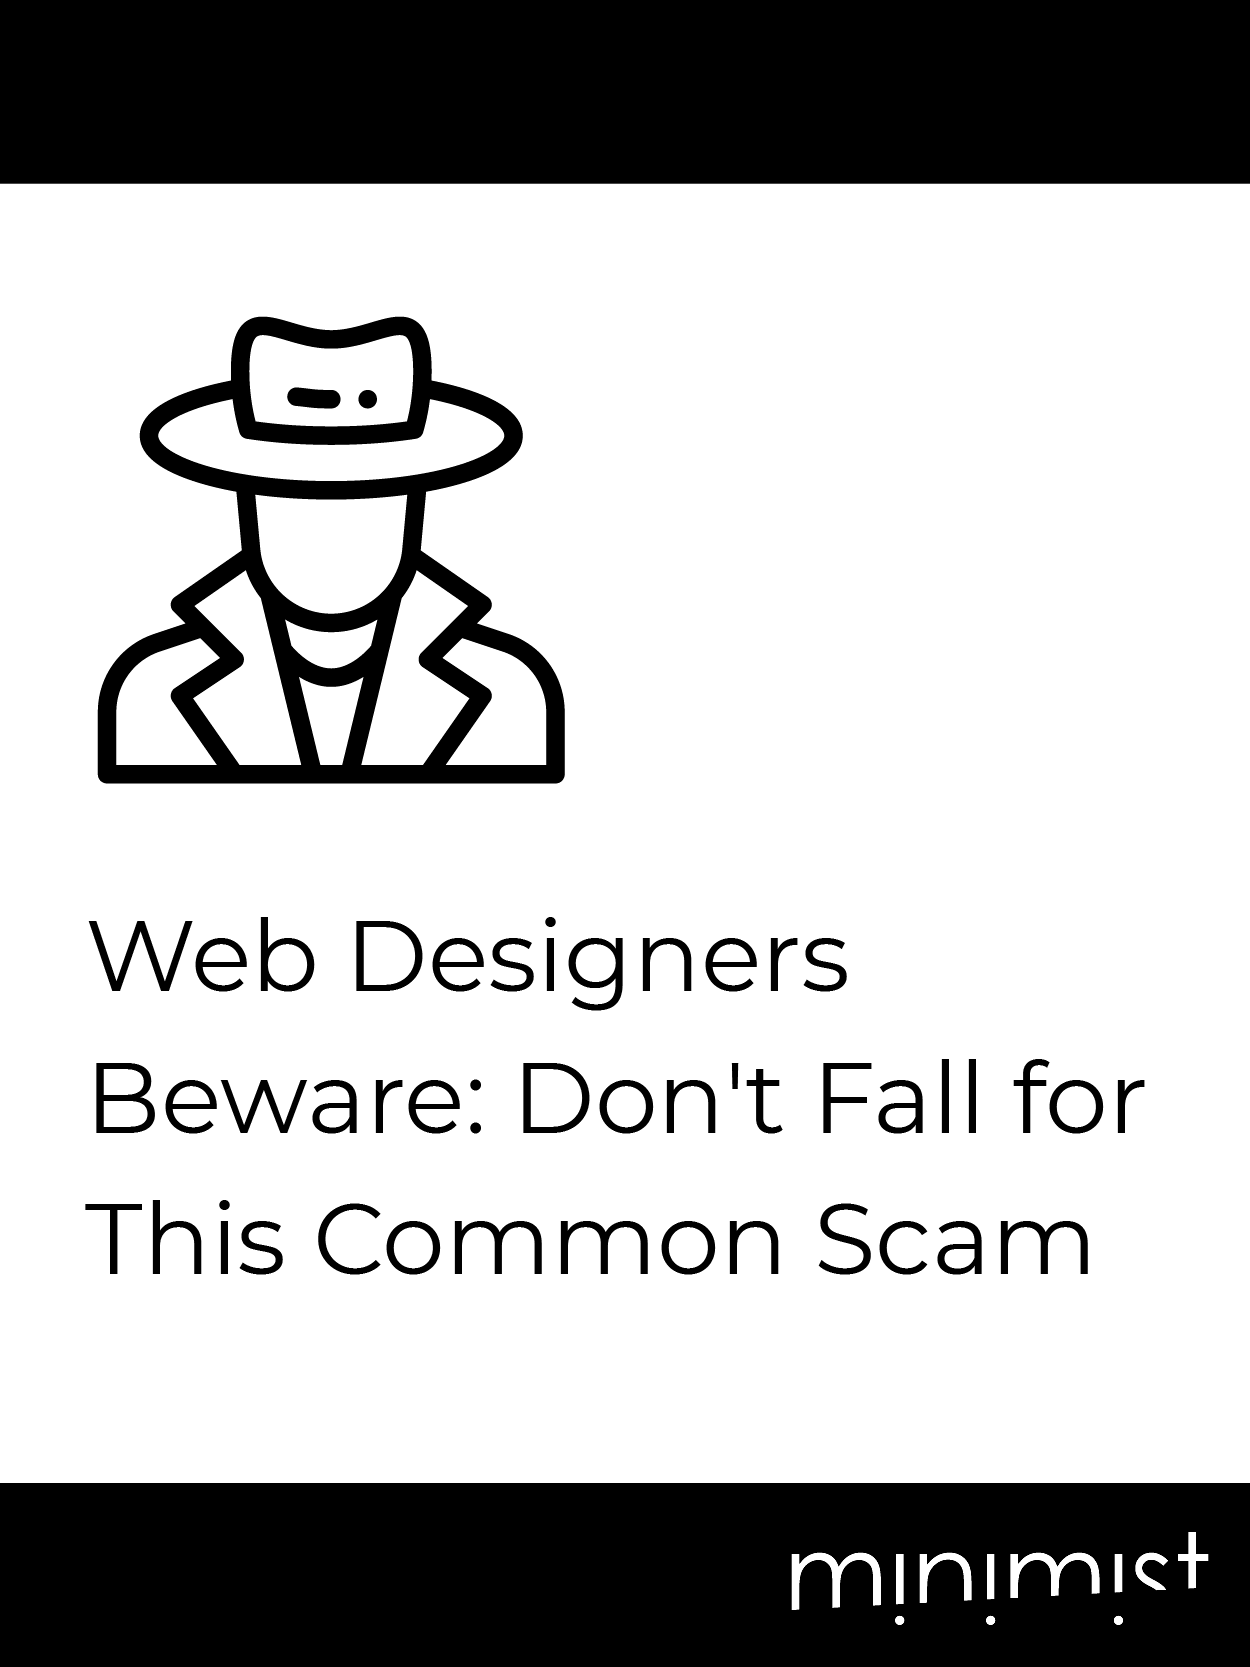 Web Designers Beware: Don't Fall for This Common Scam